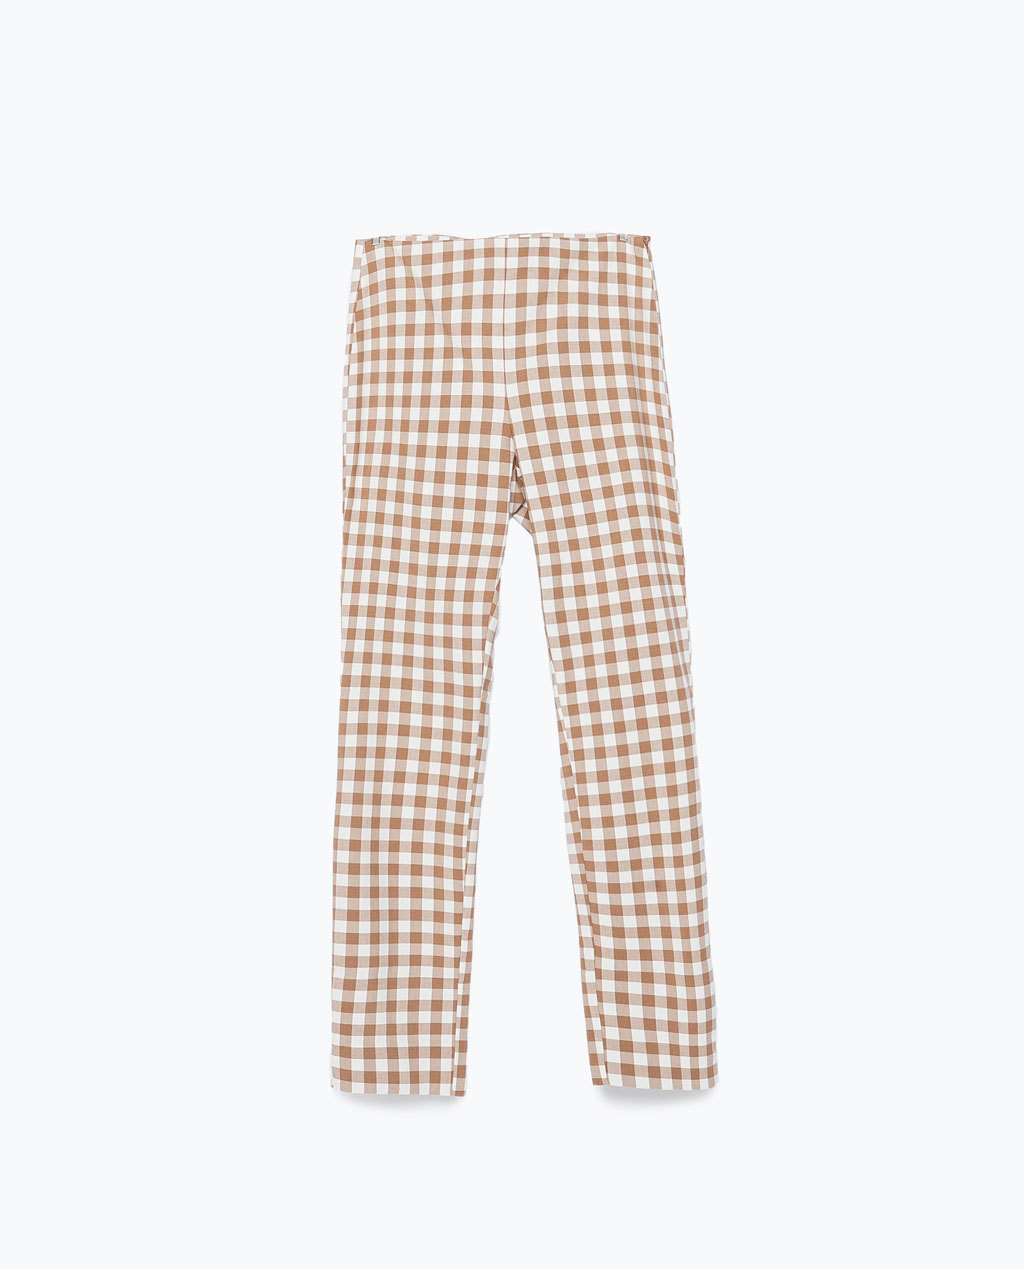 Gingham Trousers - length: standard; pattern: checked/gingham; waist: mid/regular rise; predominant colour: white; secondary colour: camel; occasions: casual, creative work; fibres: polyester/polyamide - stretch; fit: slim leg; pattern type: fabric; texture group: woven light midweight; style: standard; season: s/s 2015; pattern size: standard (bottom); wardrobe: highlight